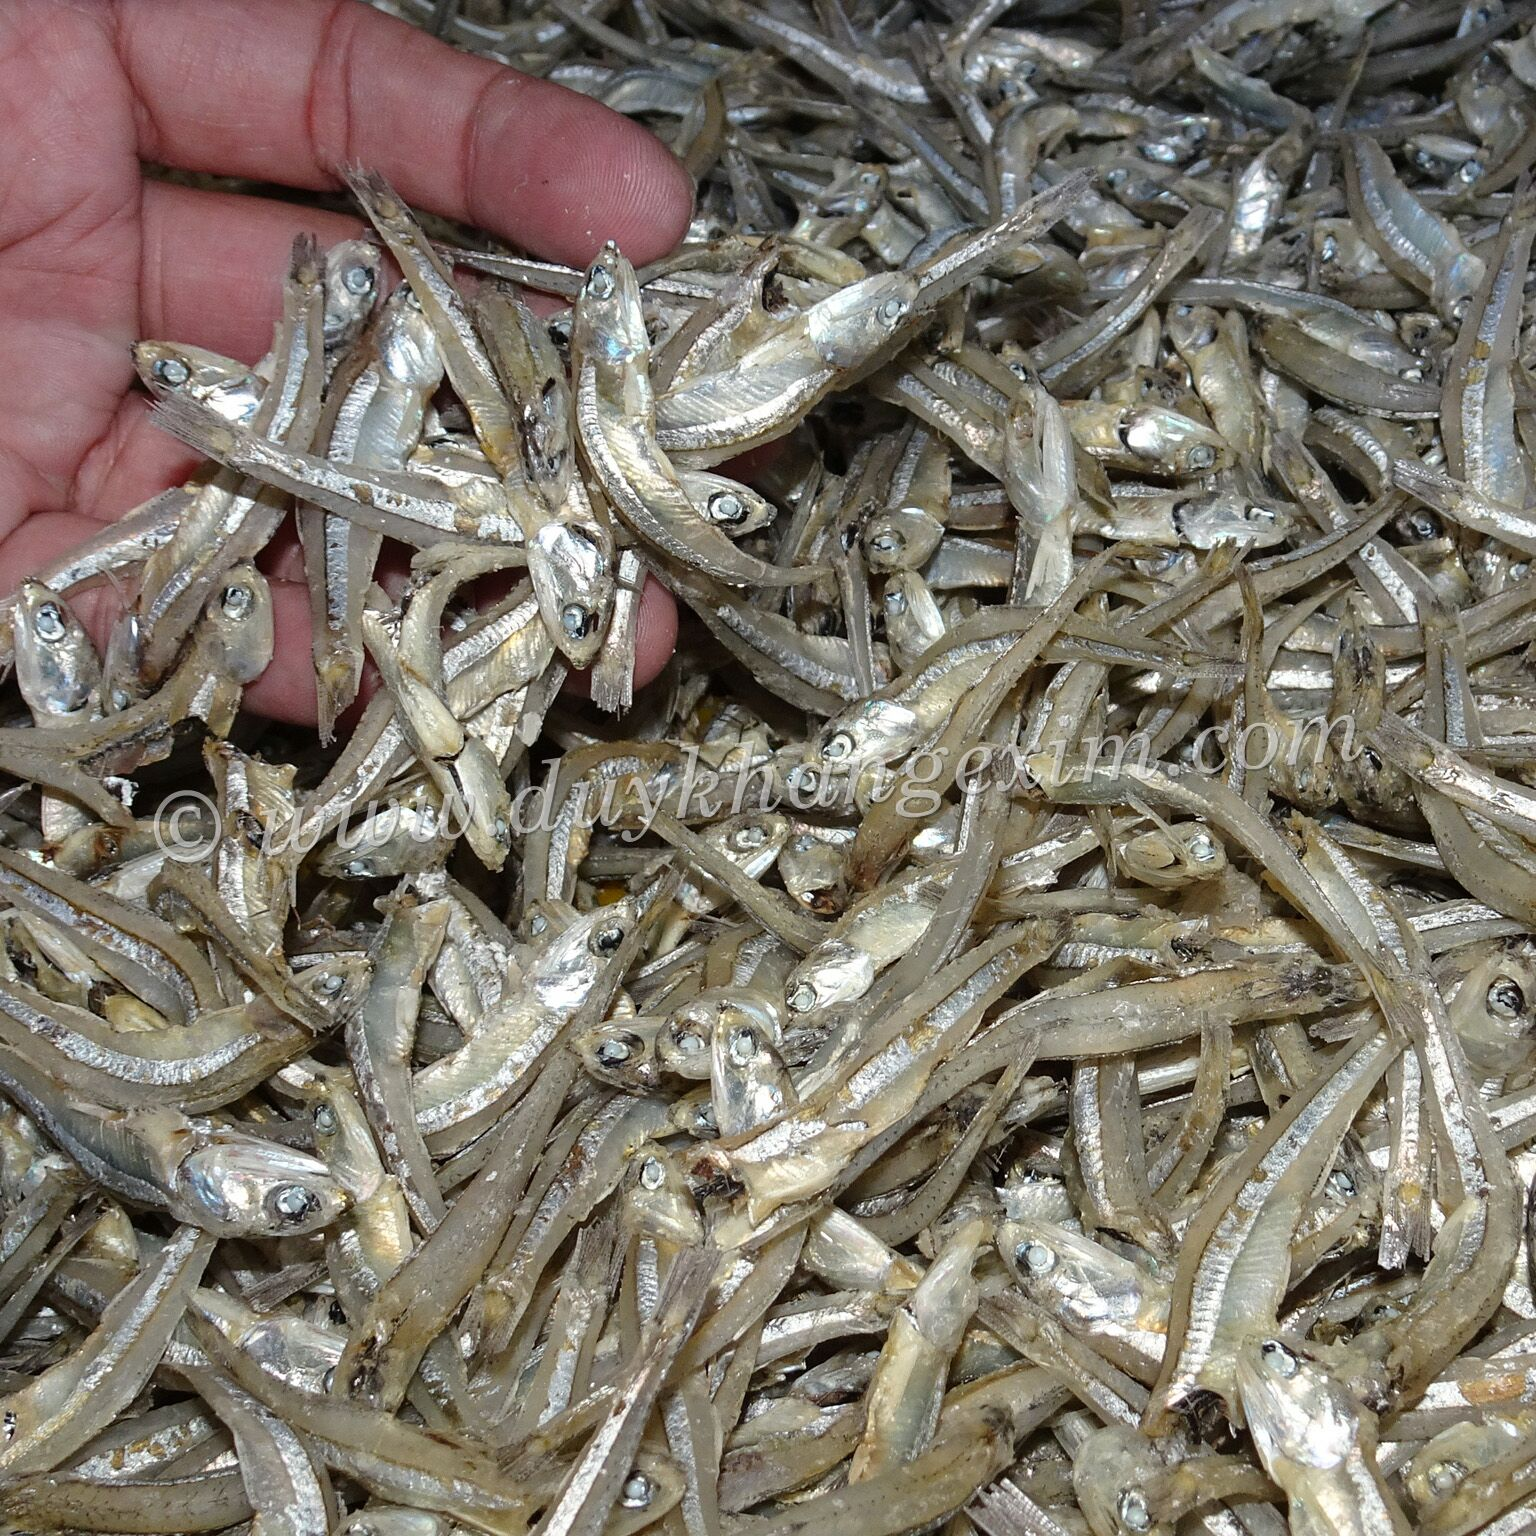 PREMIUM BOILED ANCHOVIES WITH ATTRACTIVE PRICE